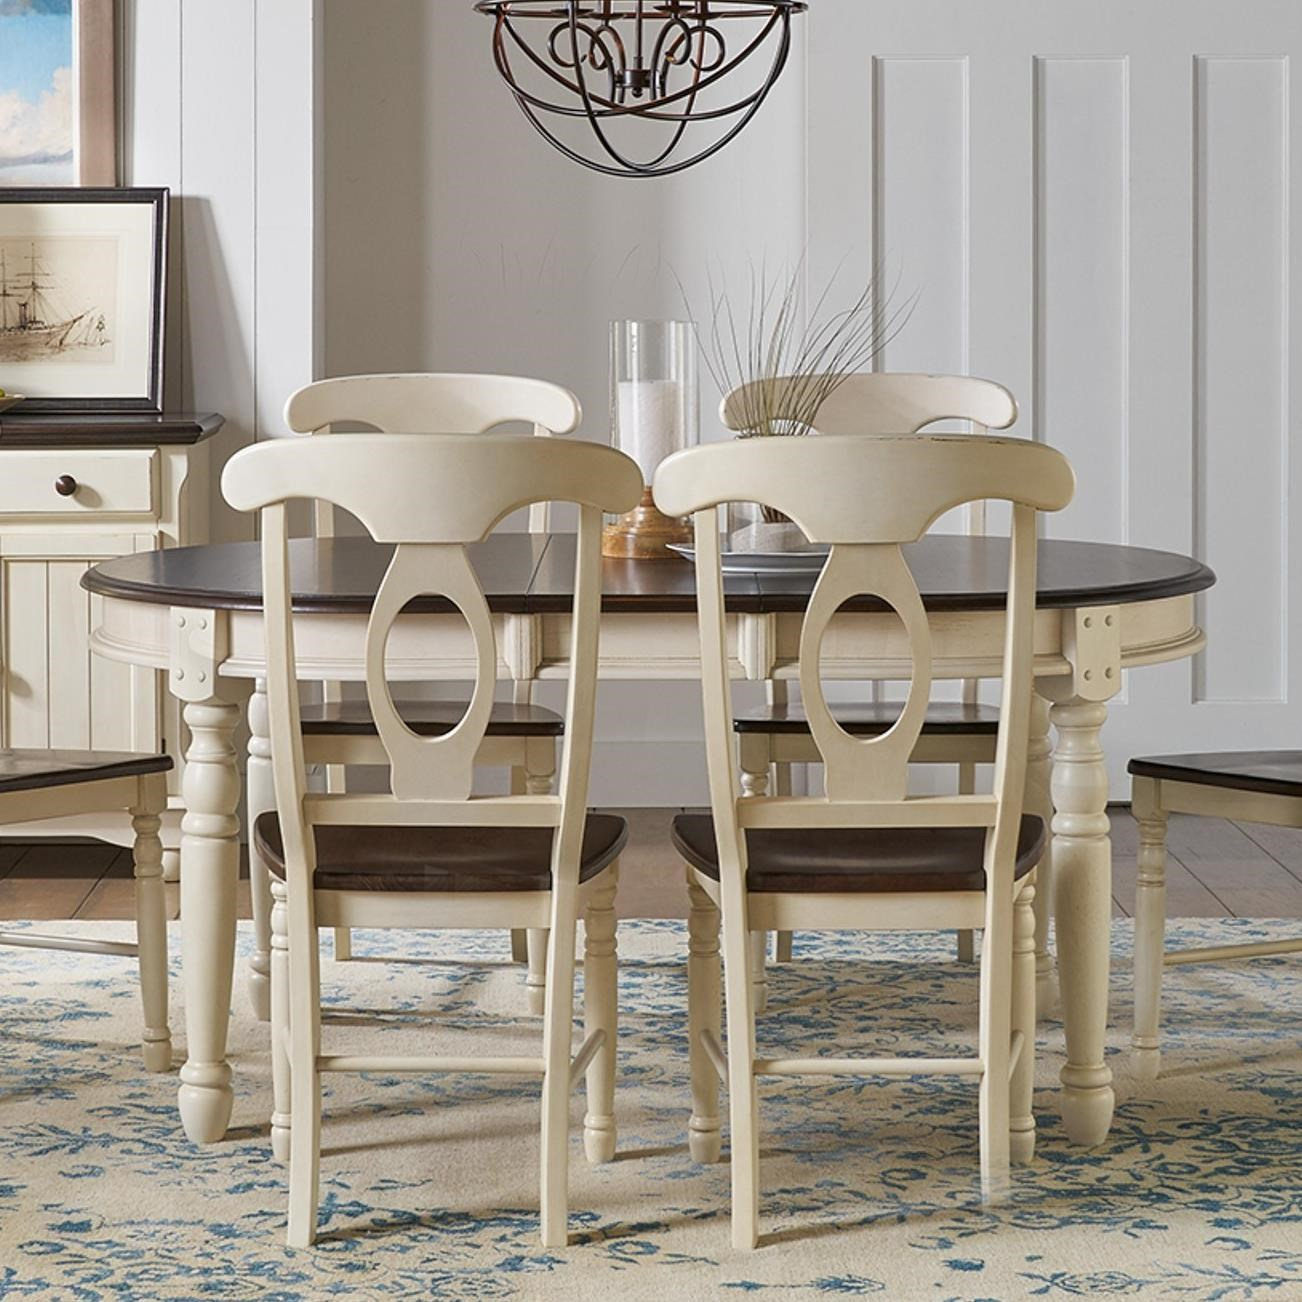 British Isles - CO Oval Leg Table by AAmerica at Zak's Home